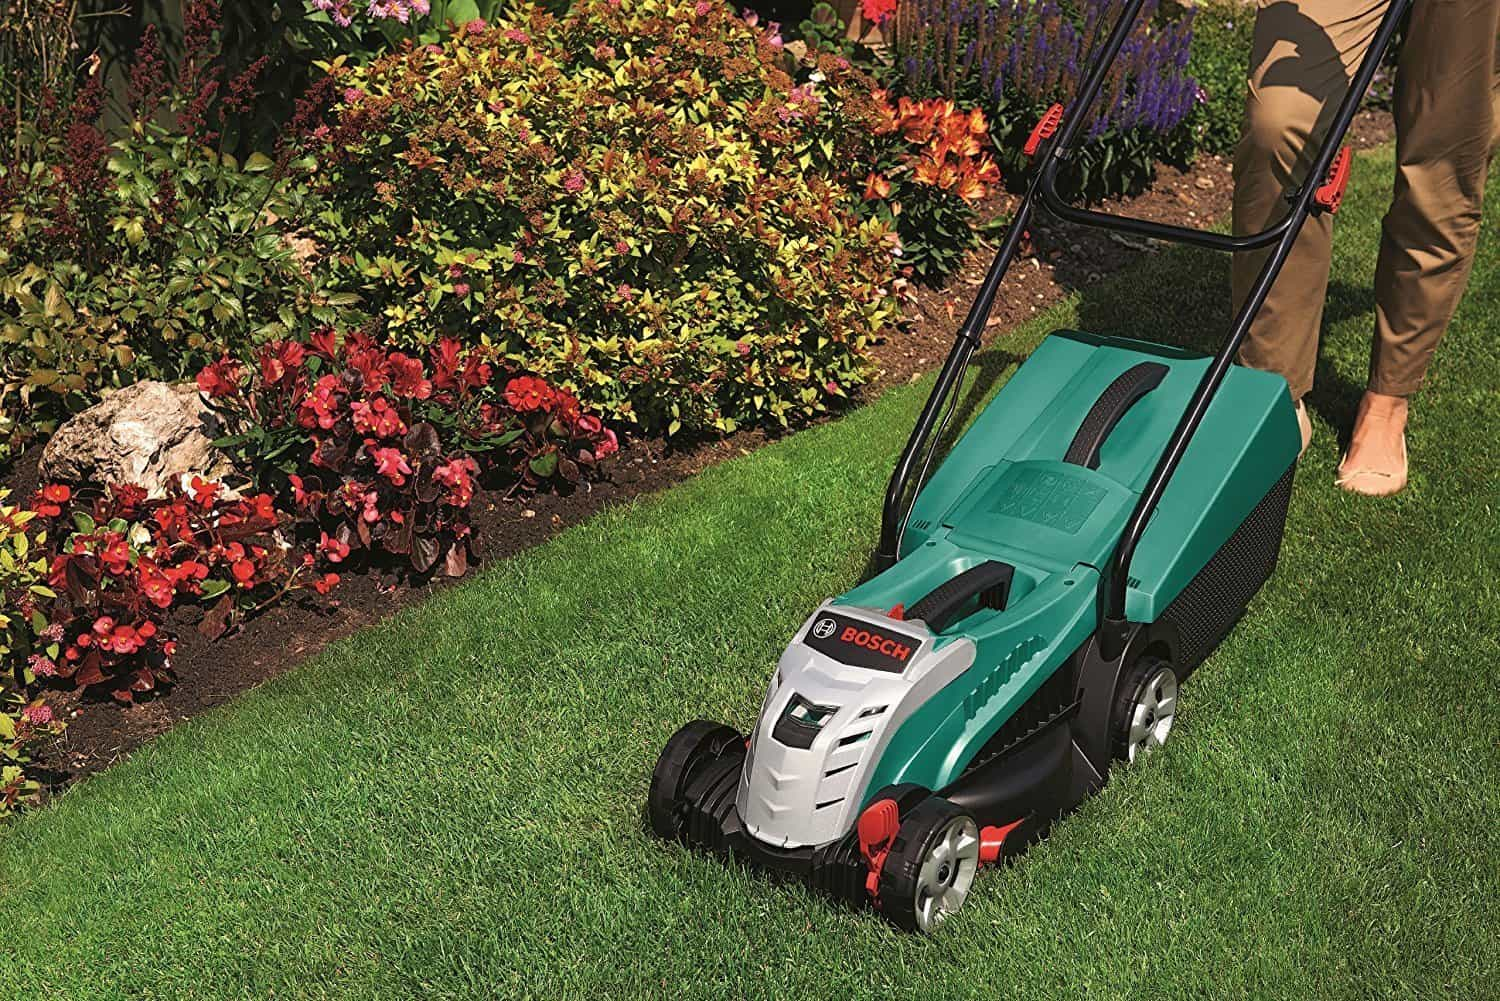 bosch rotak 32 li review robotic cordless lawn mower reviews. Black Bedroom Furniture Sets. Home Design Ideas